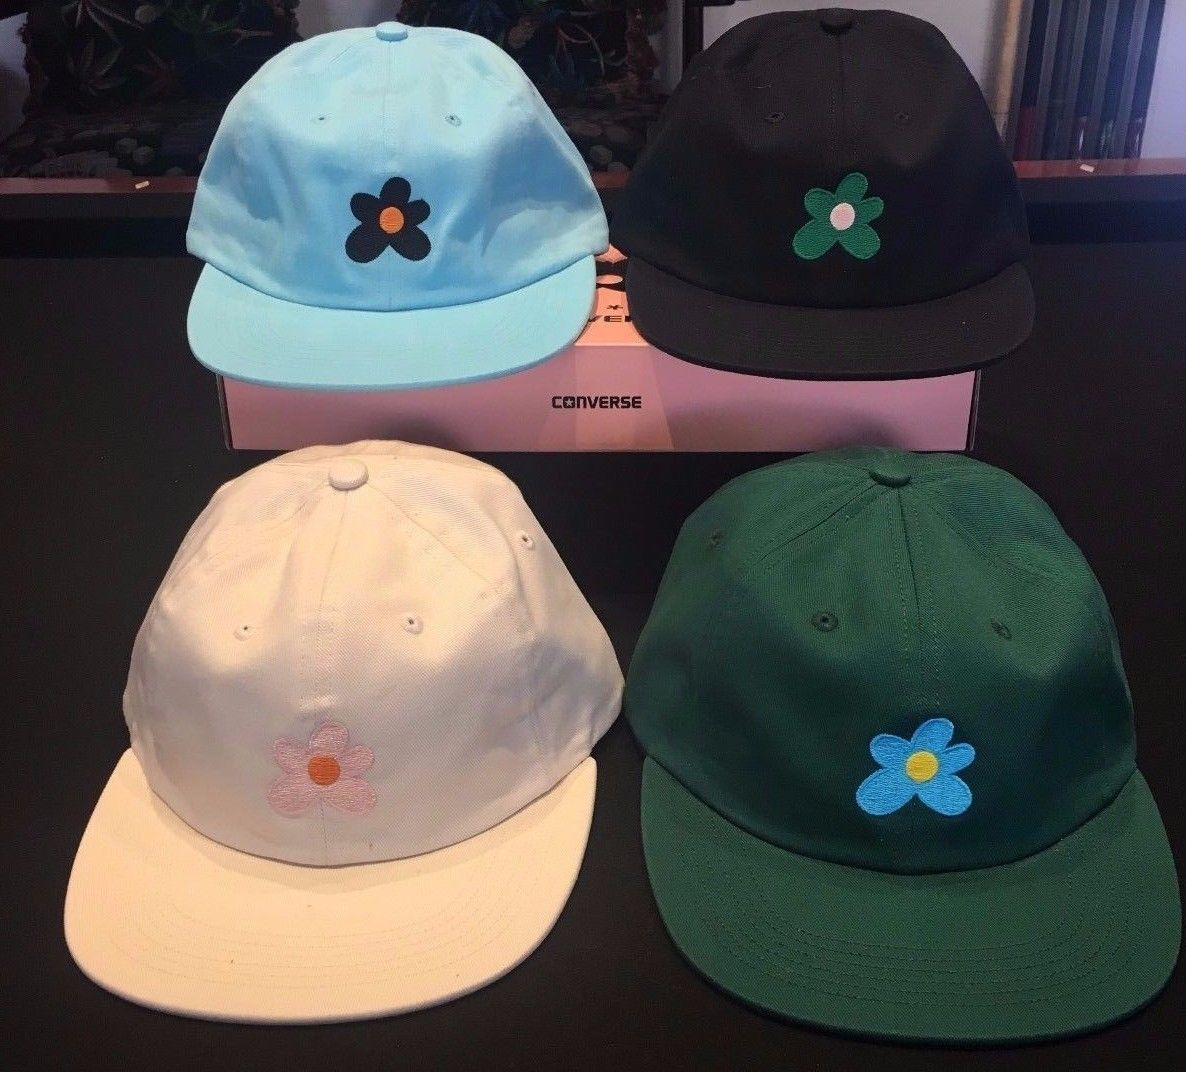 a55e79a3fb5a4 Hats 163543  Official Golf Wang Le Fleur Tyler The Creator Black Hat -  BUY  IT NOW ONLY   59.99 on eBay!